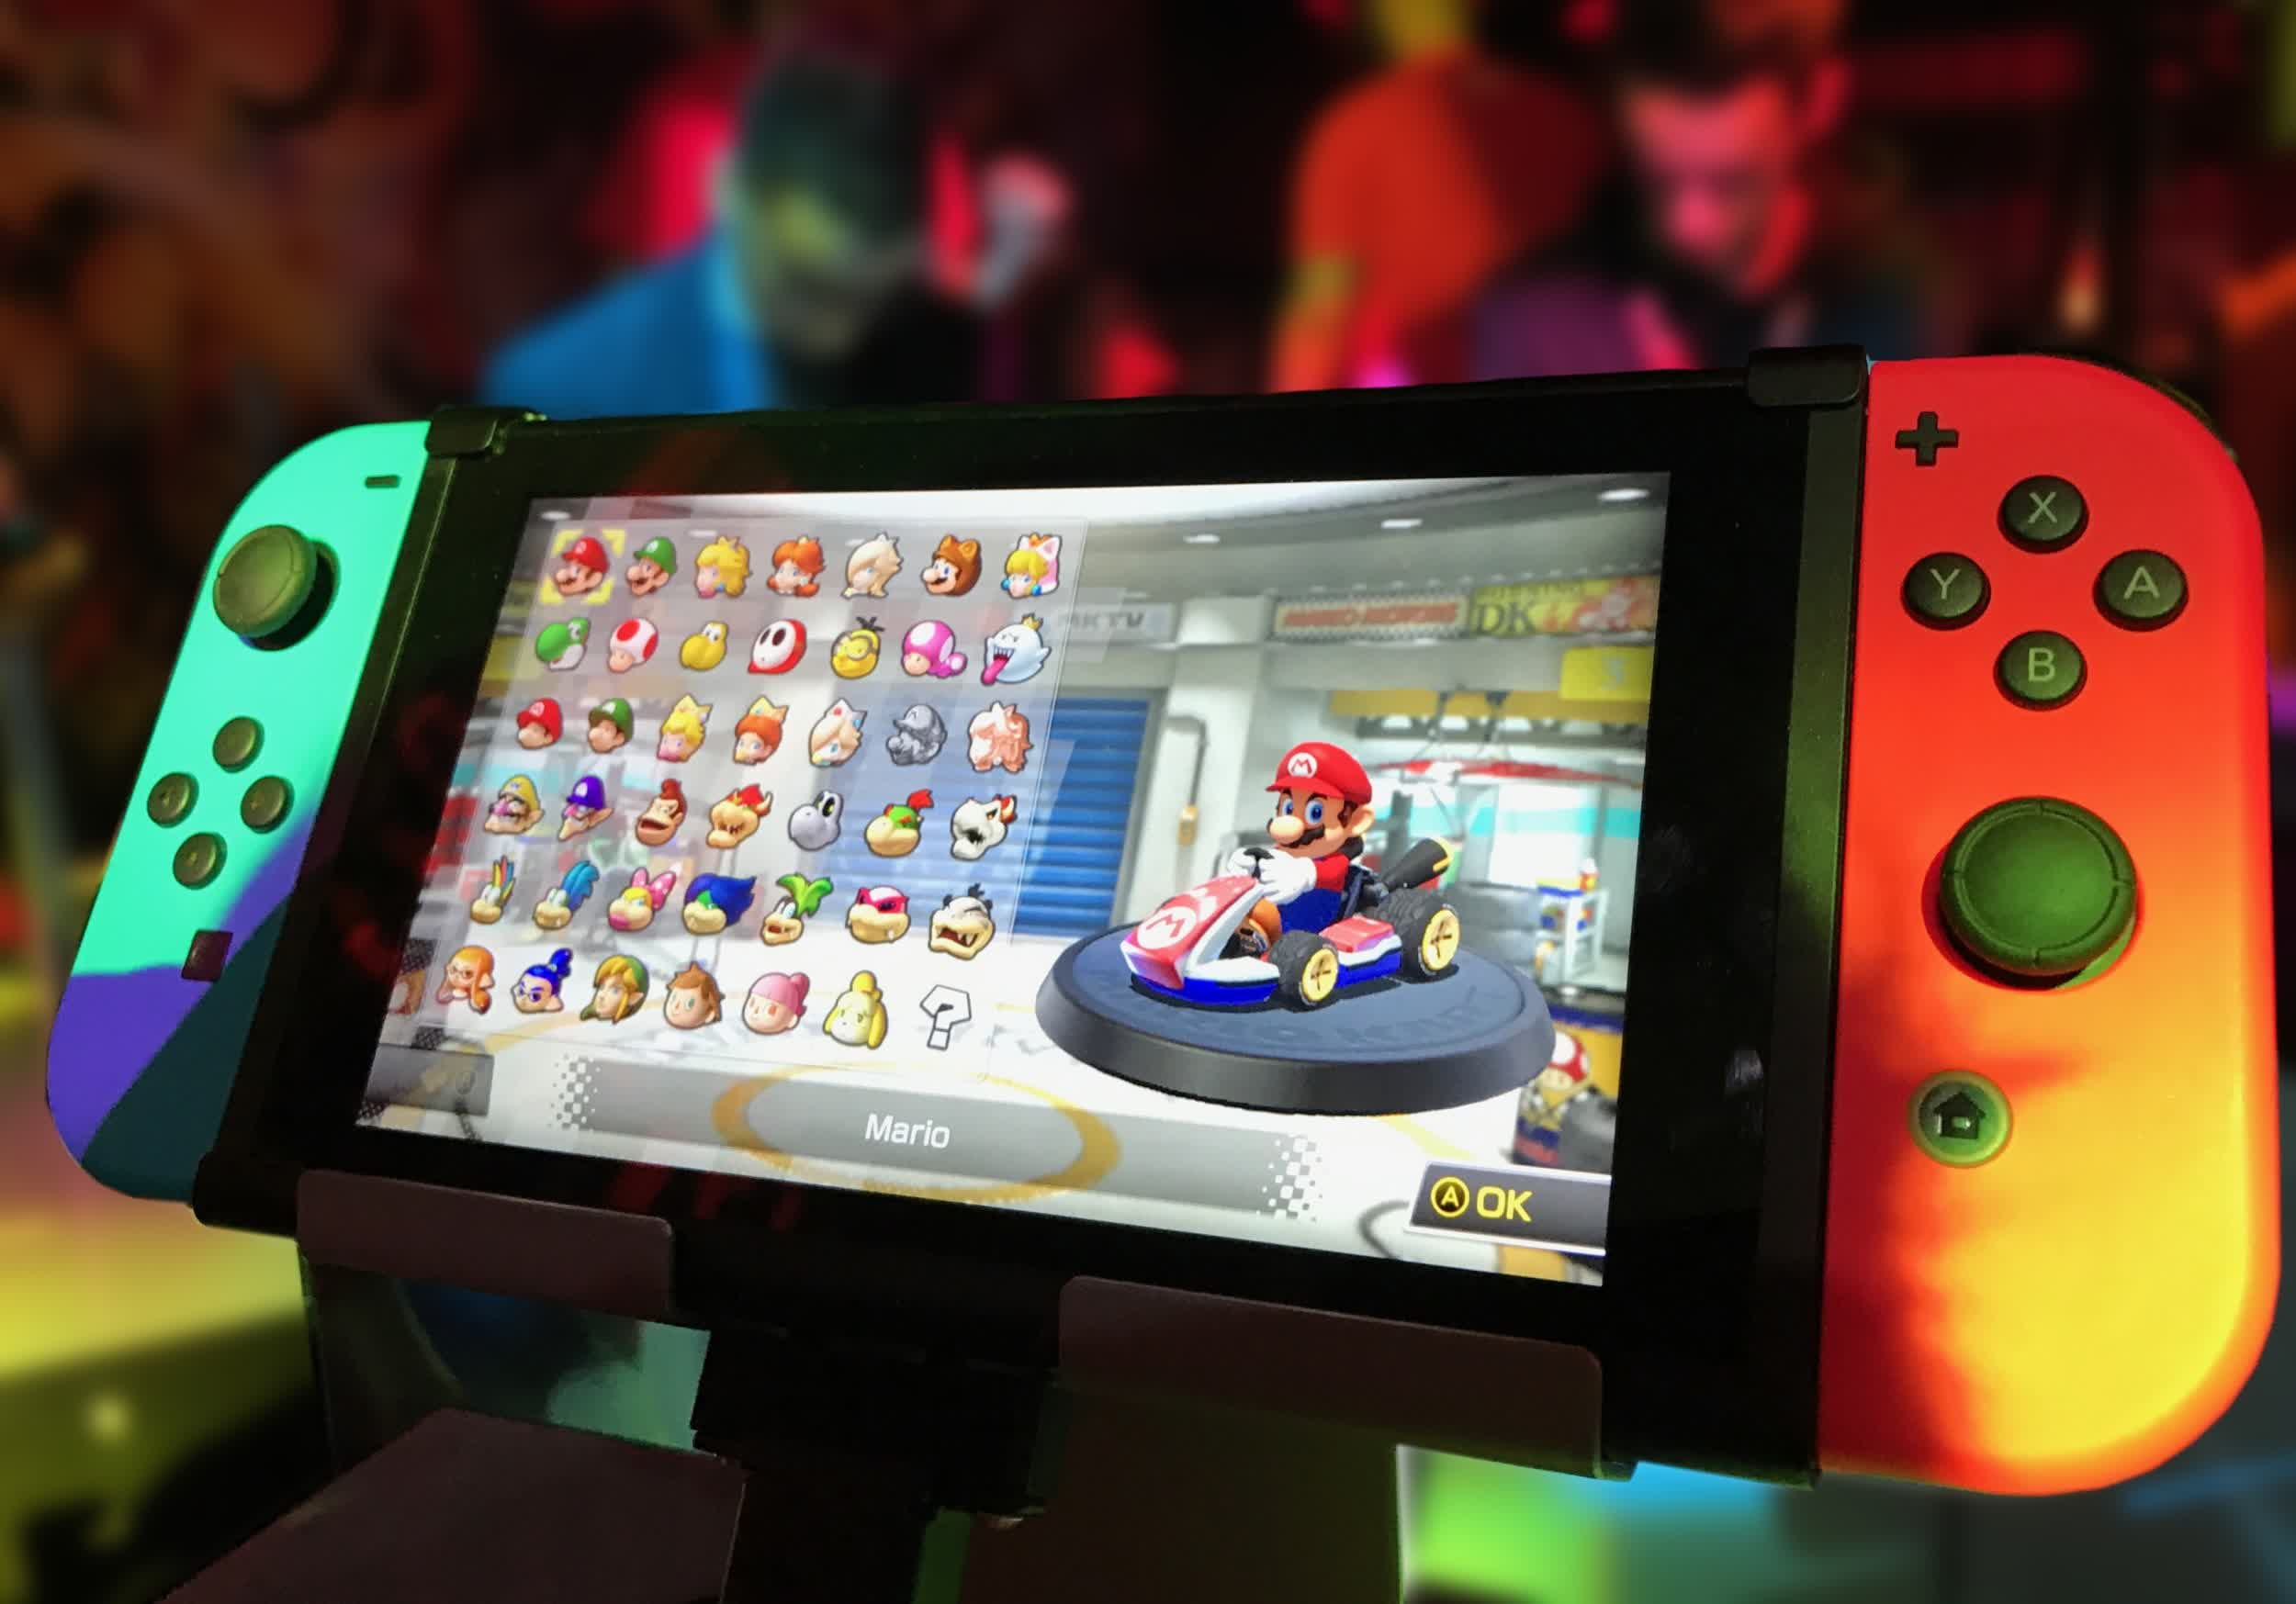 Nintendo engineers say Switch Joy-Con drift is caused by wear, and is unavoidable